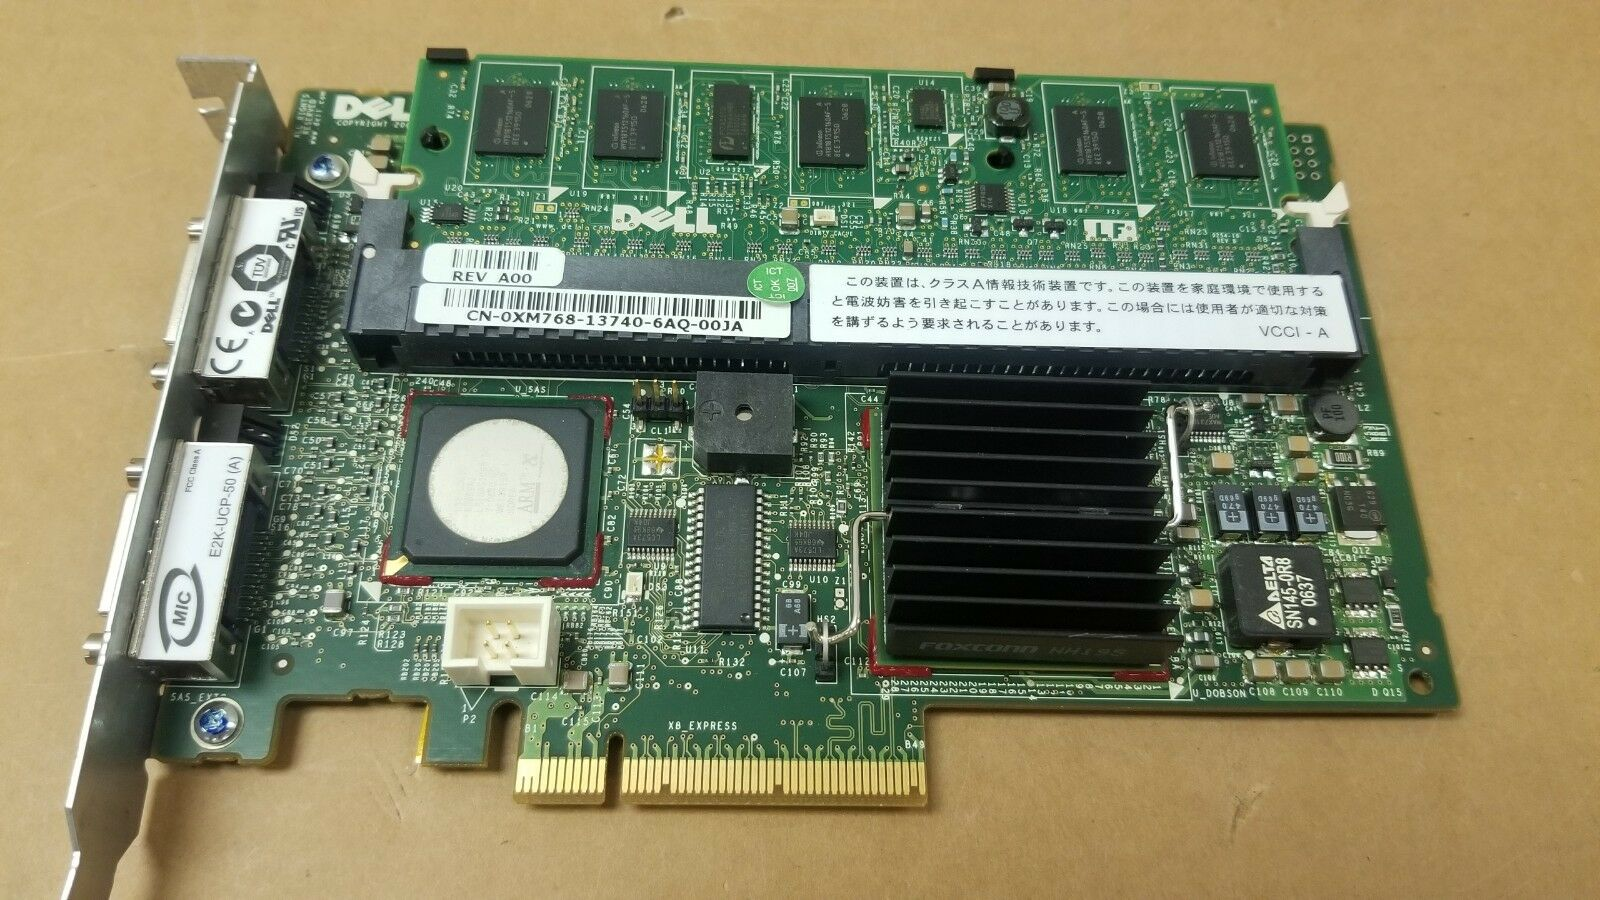 Dell XM768 PERC 5/E Dual Channel 256MB SAS Raid Controller with Battery